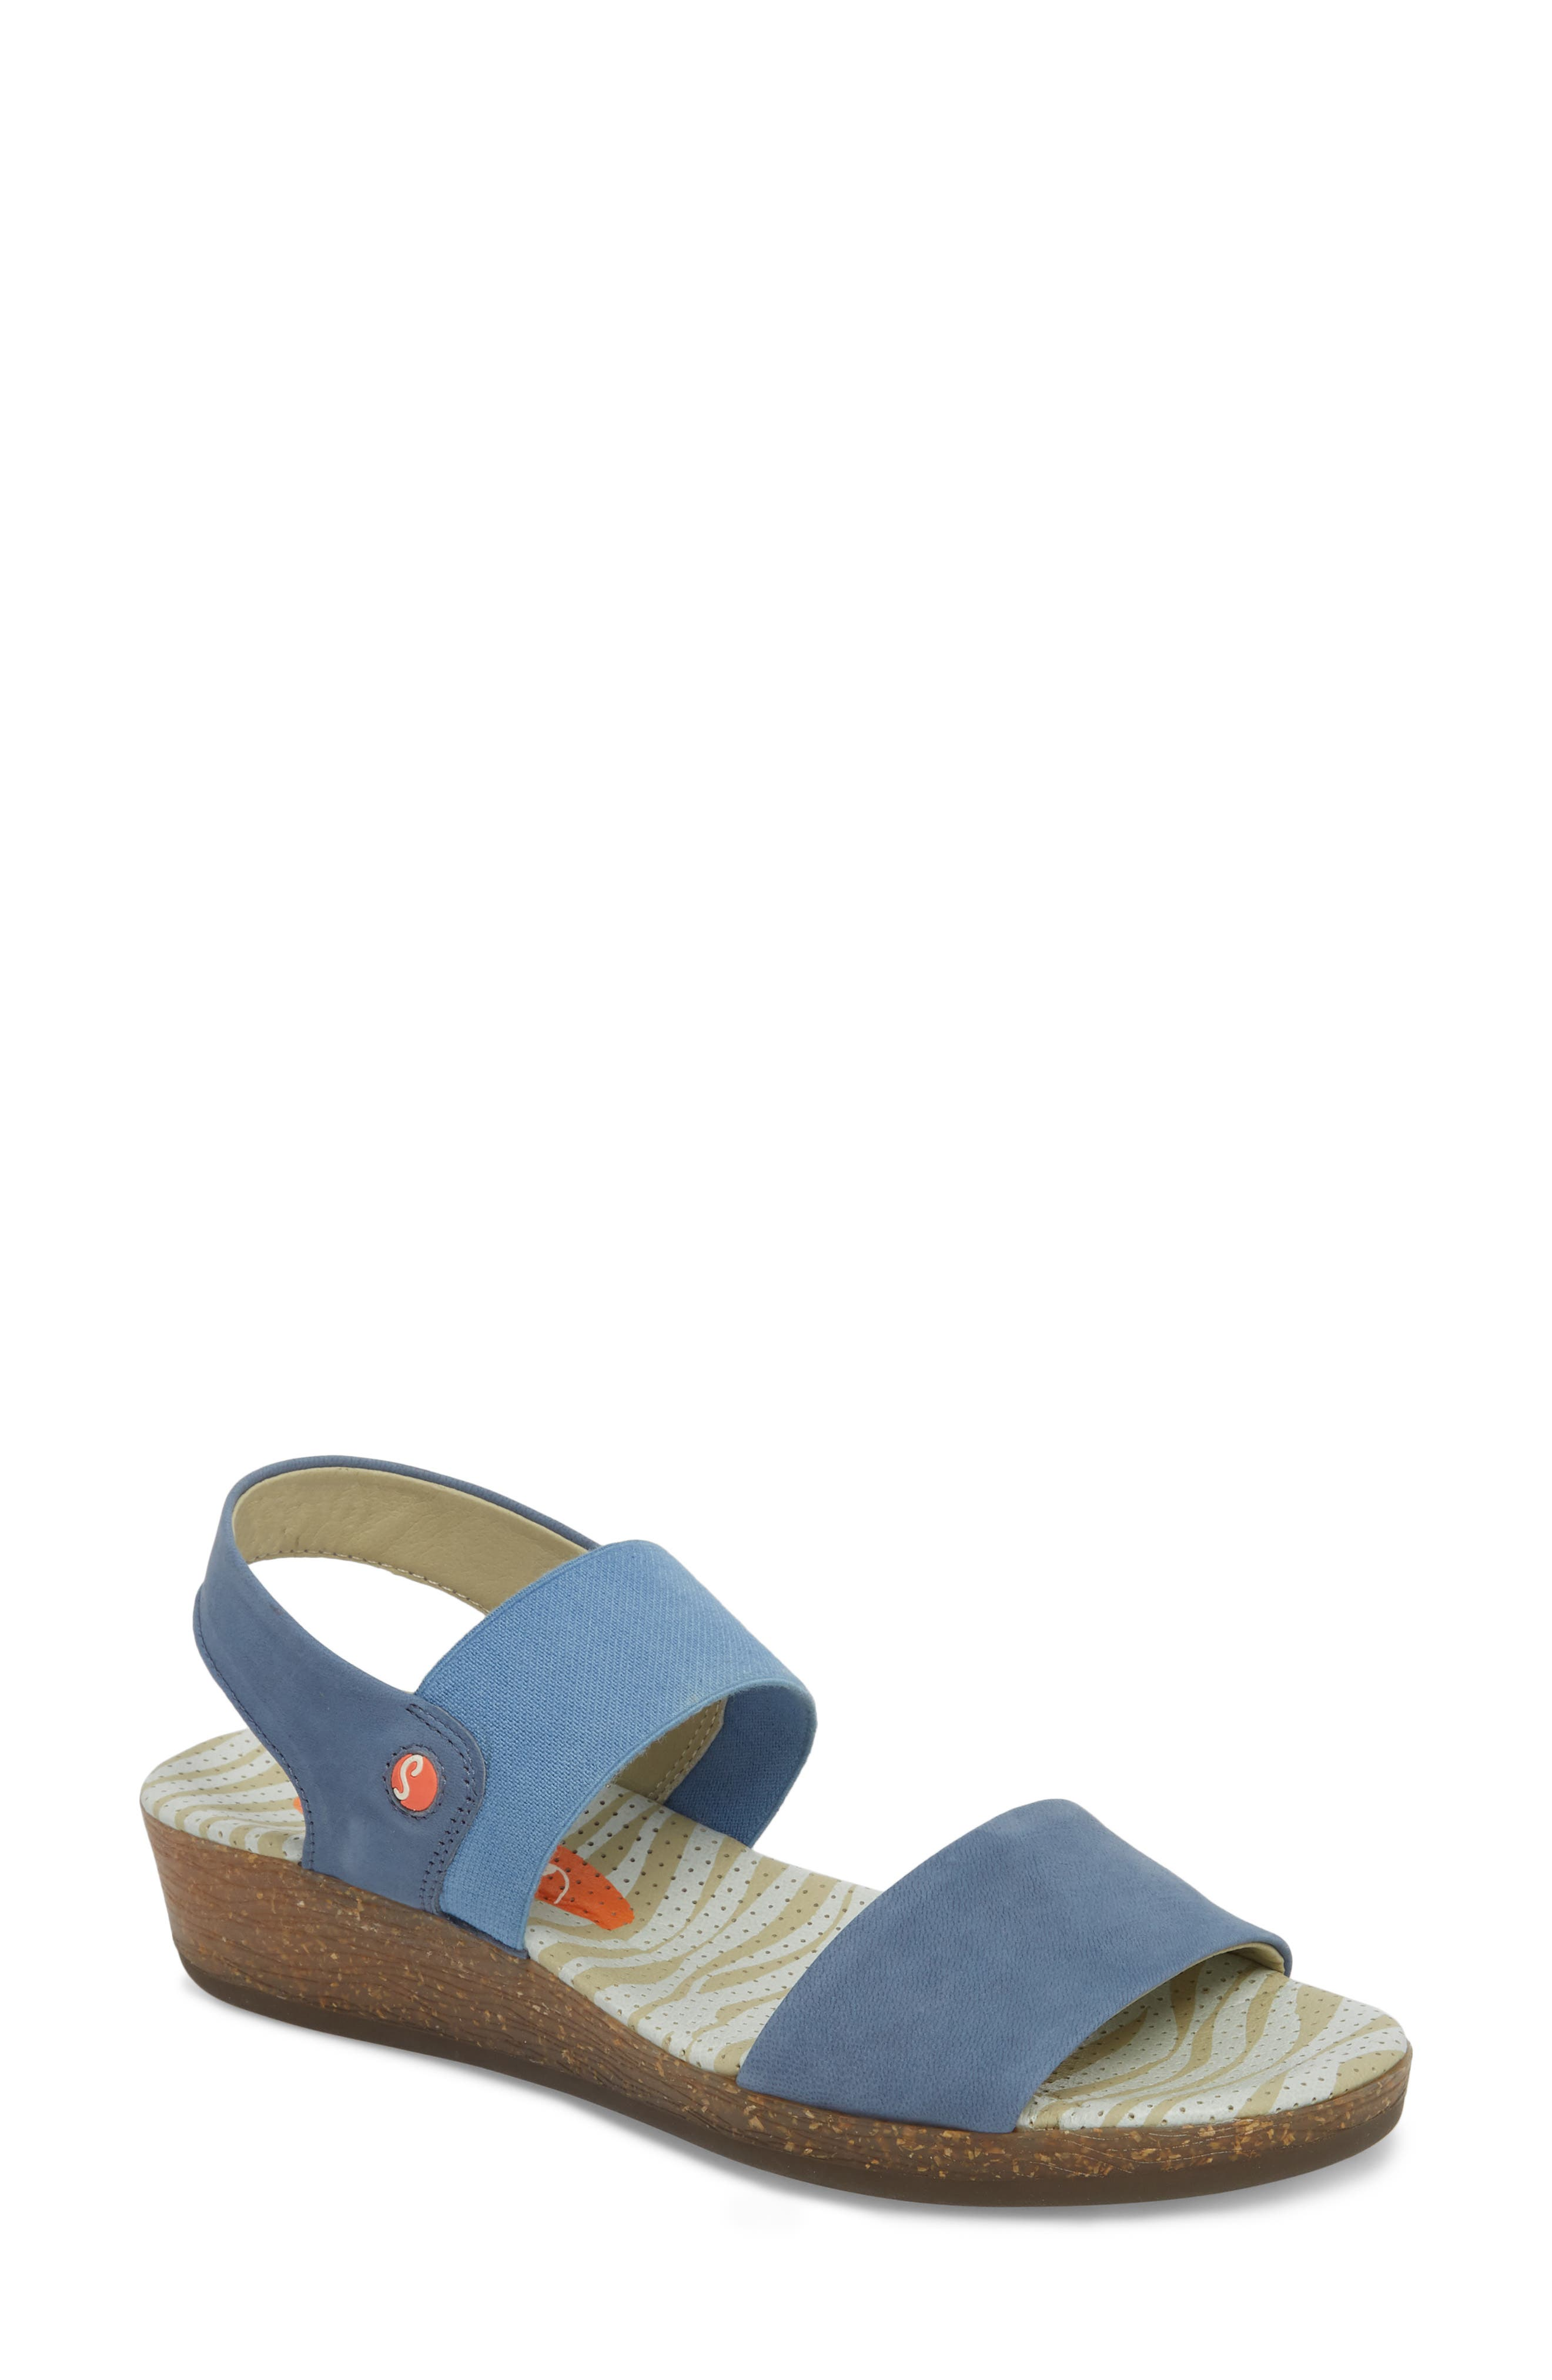 Softinos By Fly London Sandal - Blue